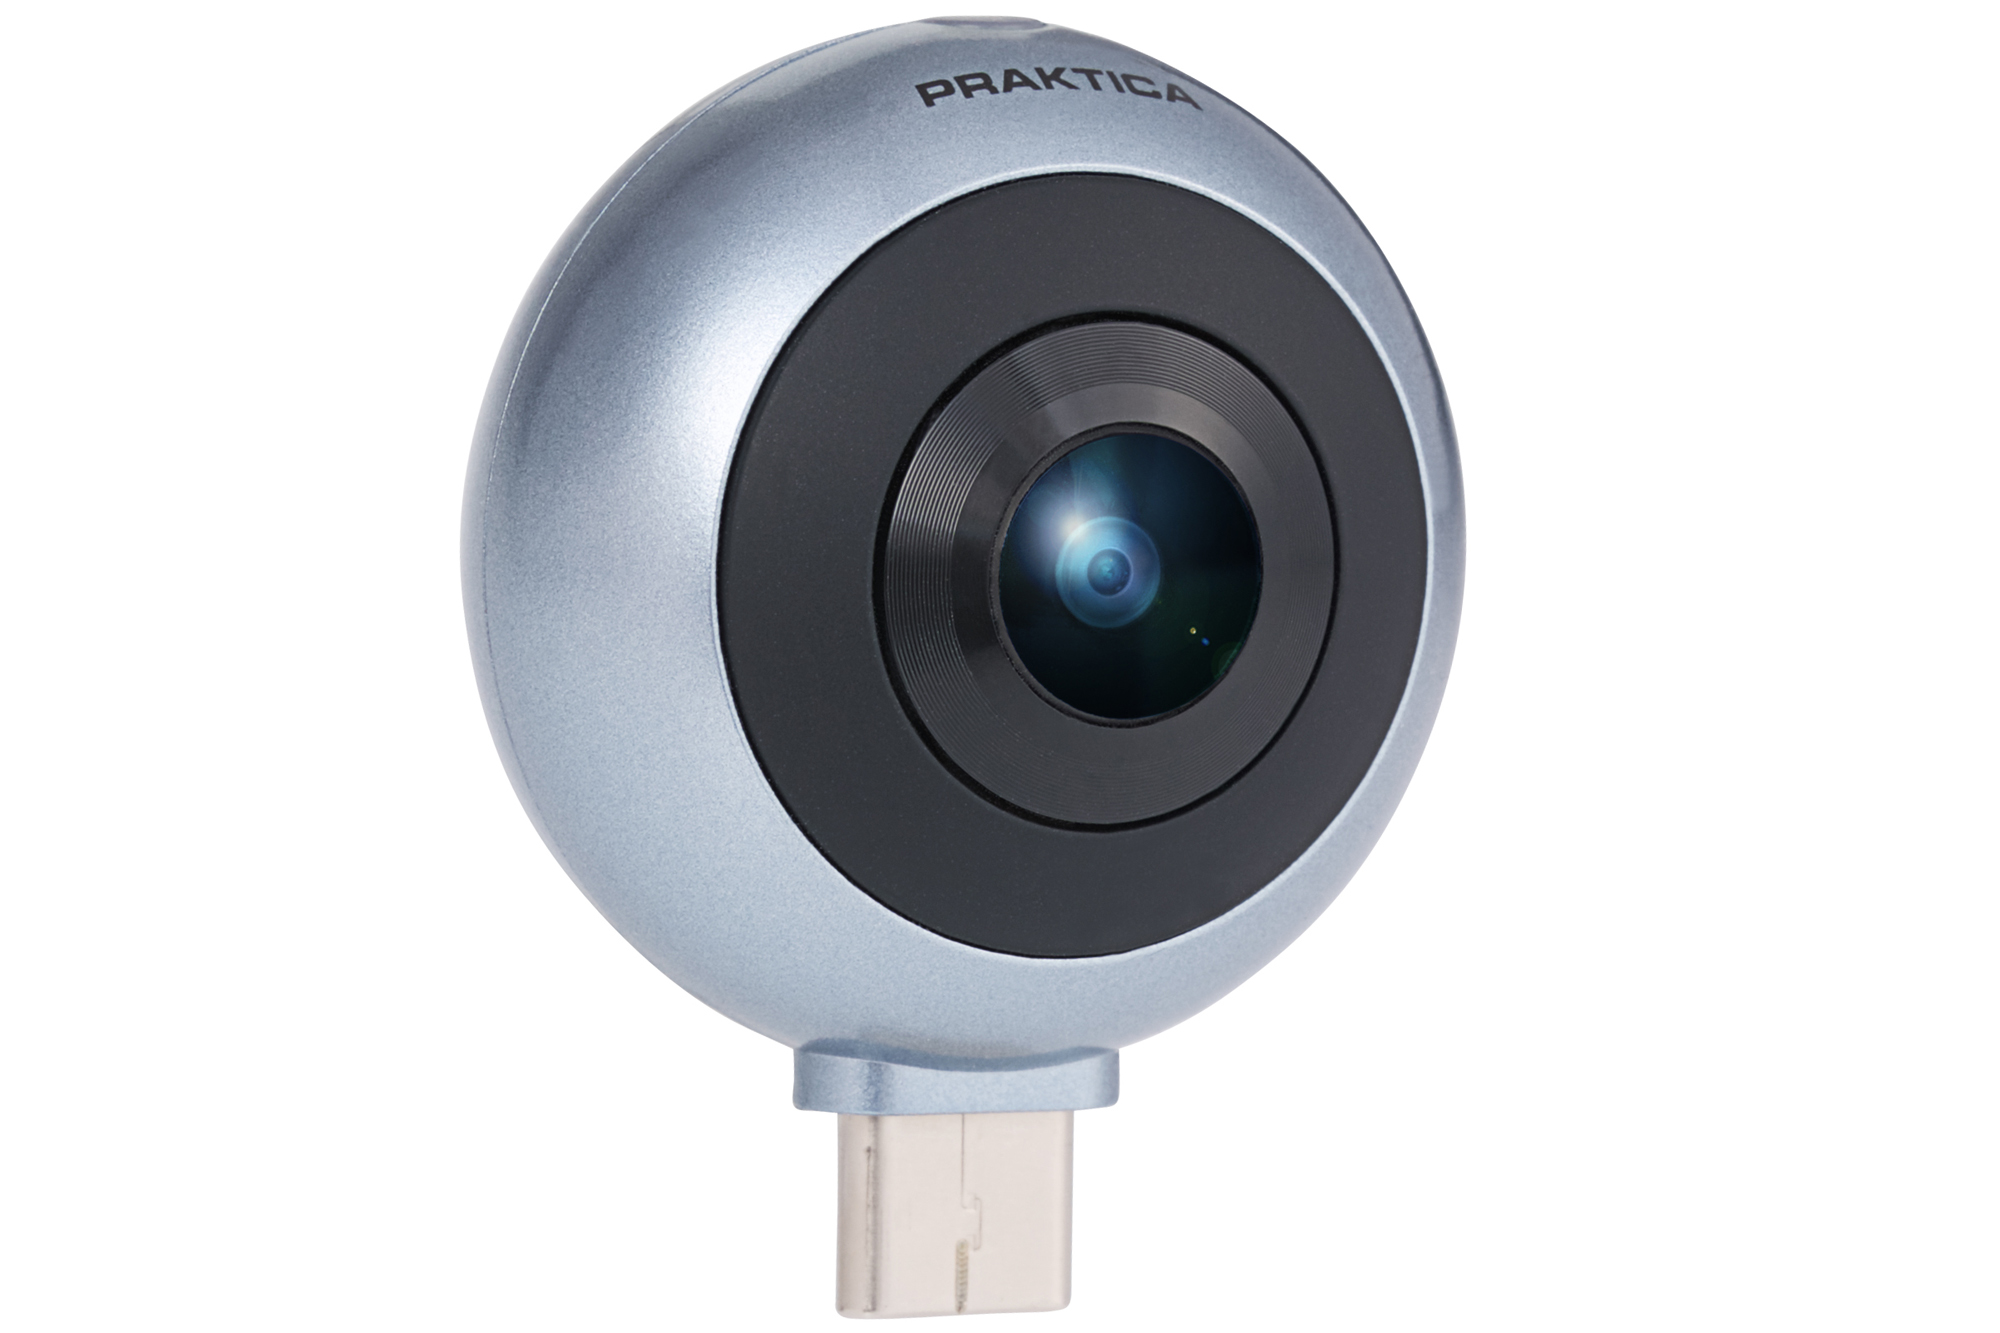 Praktica Z360m 360-Degree FHD Live Stream Phone Camera